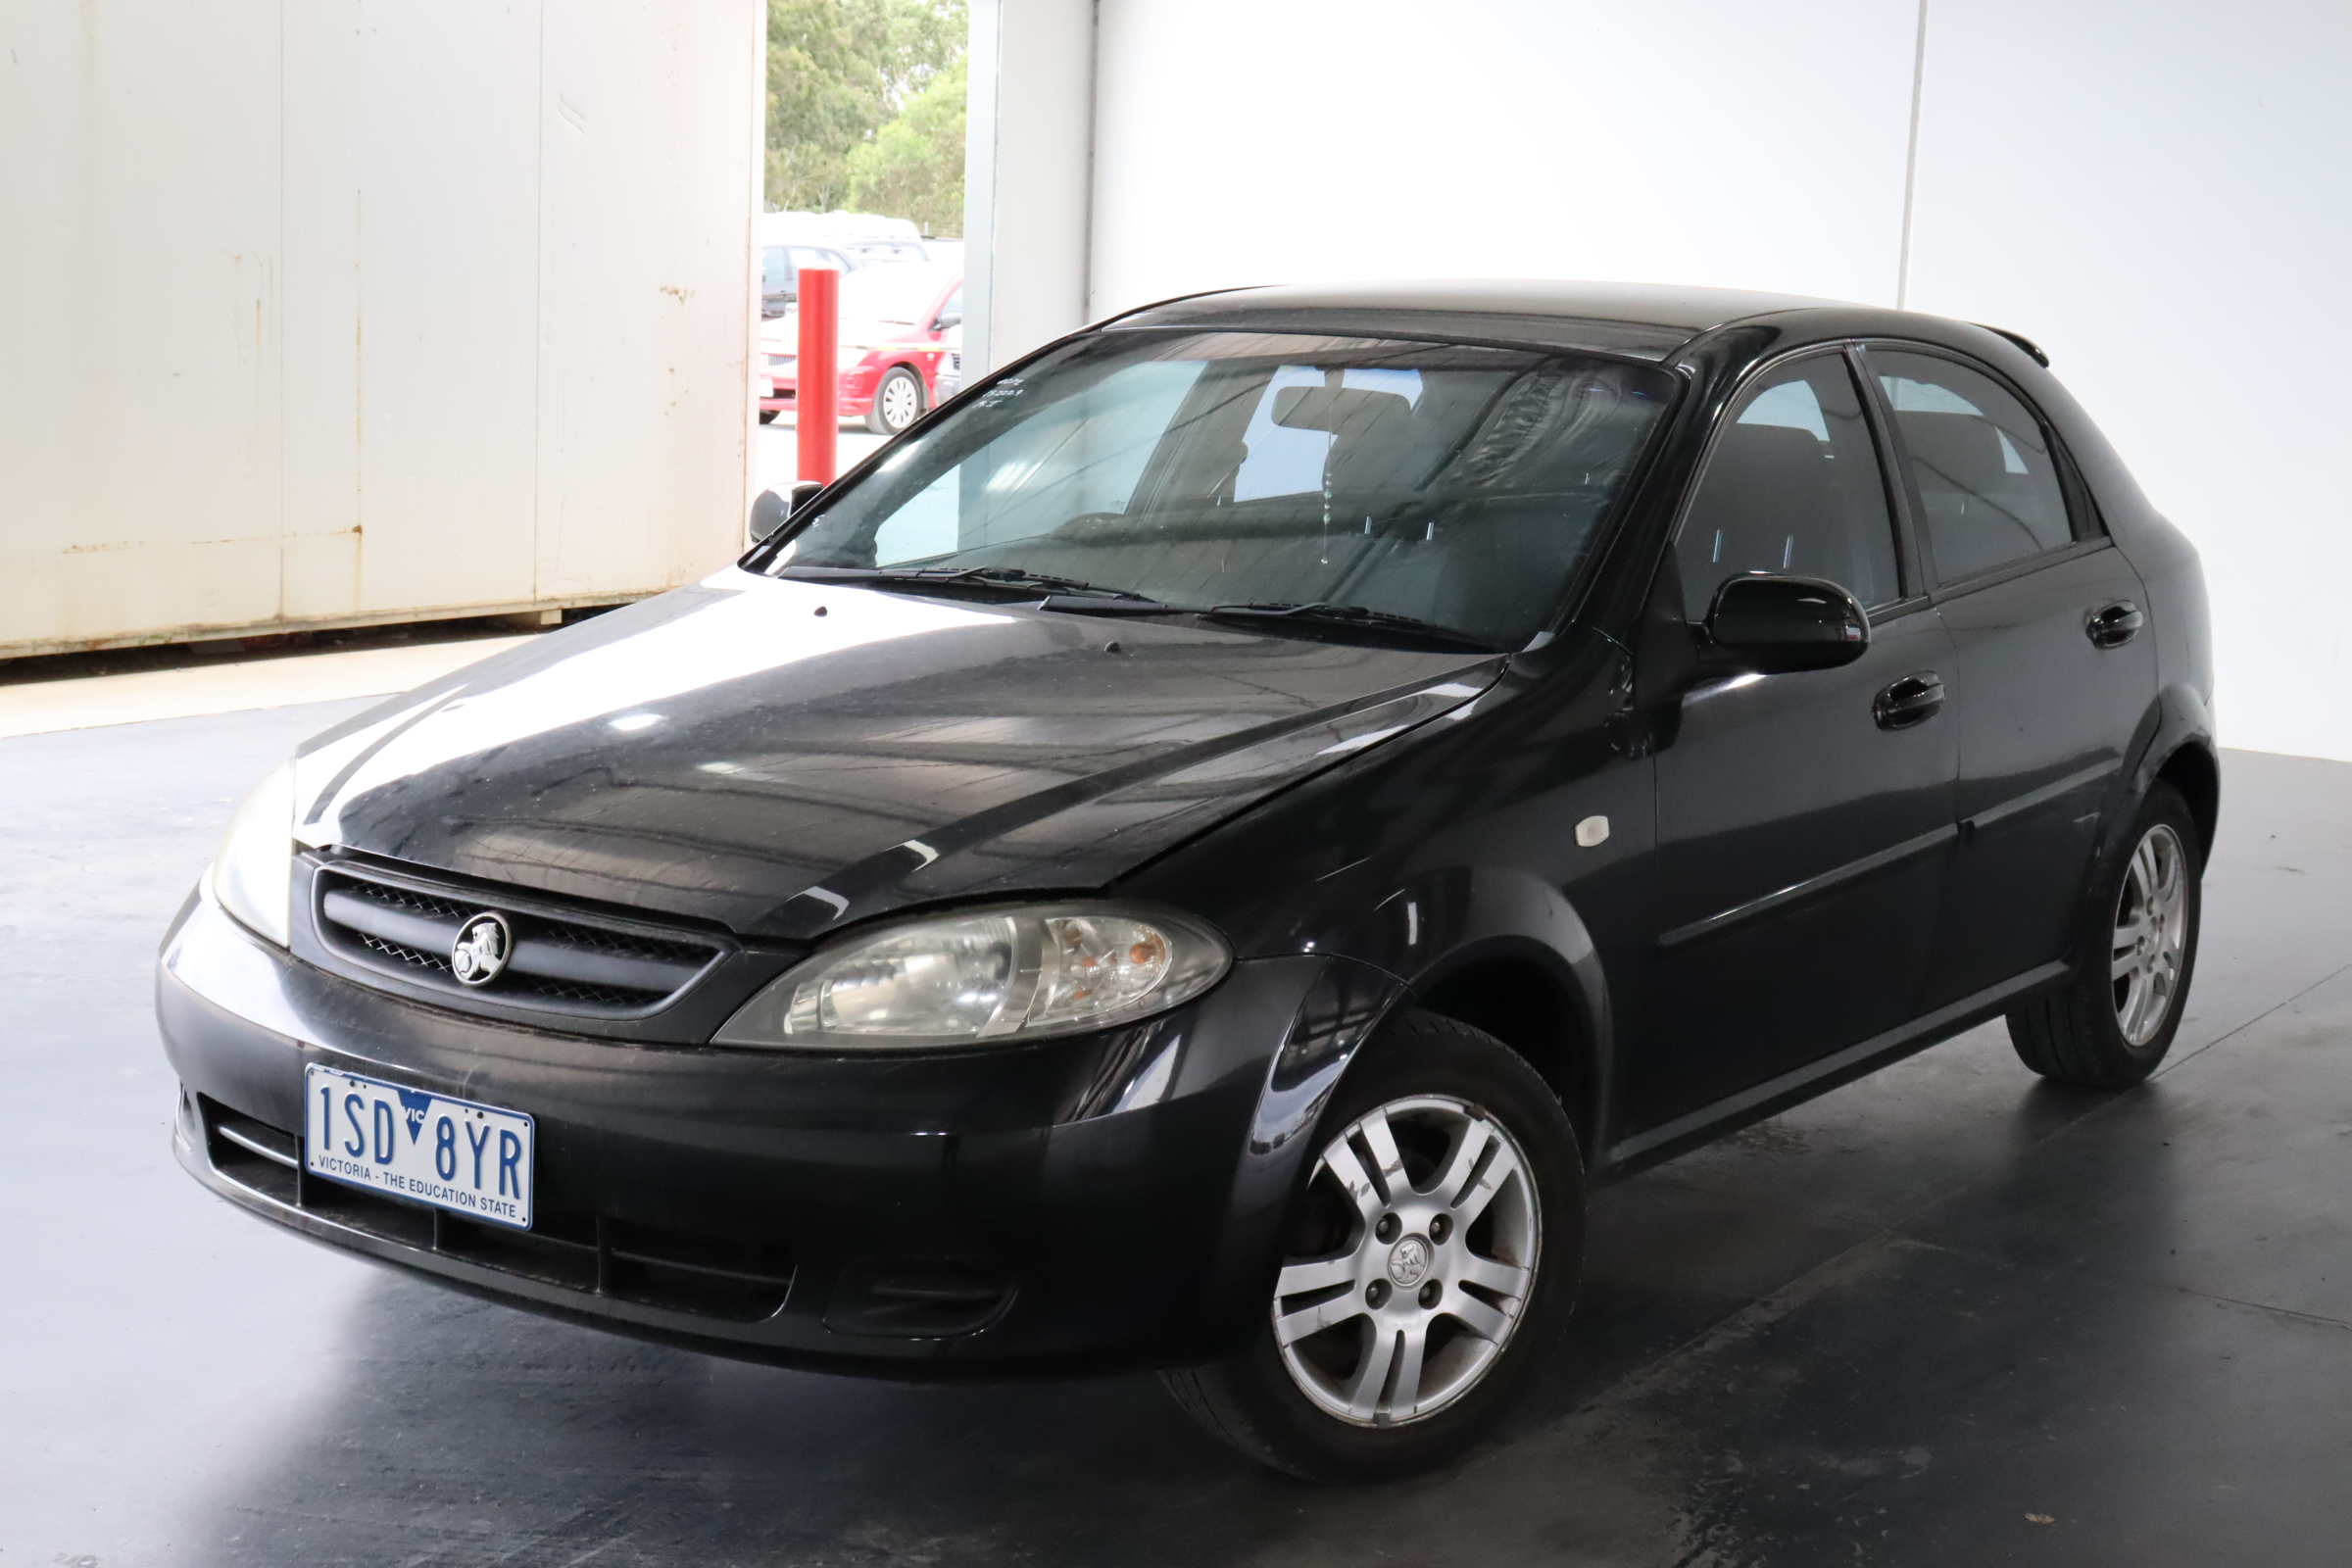 2006 Holden Viva JF Automatic Hatchback